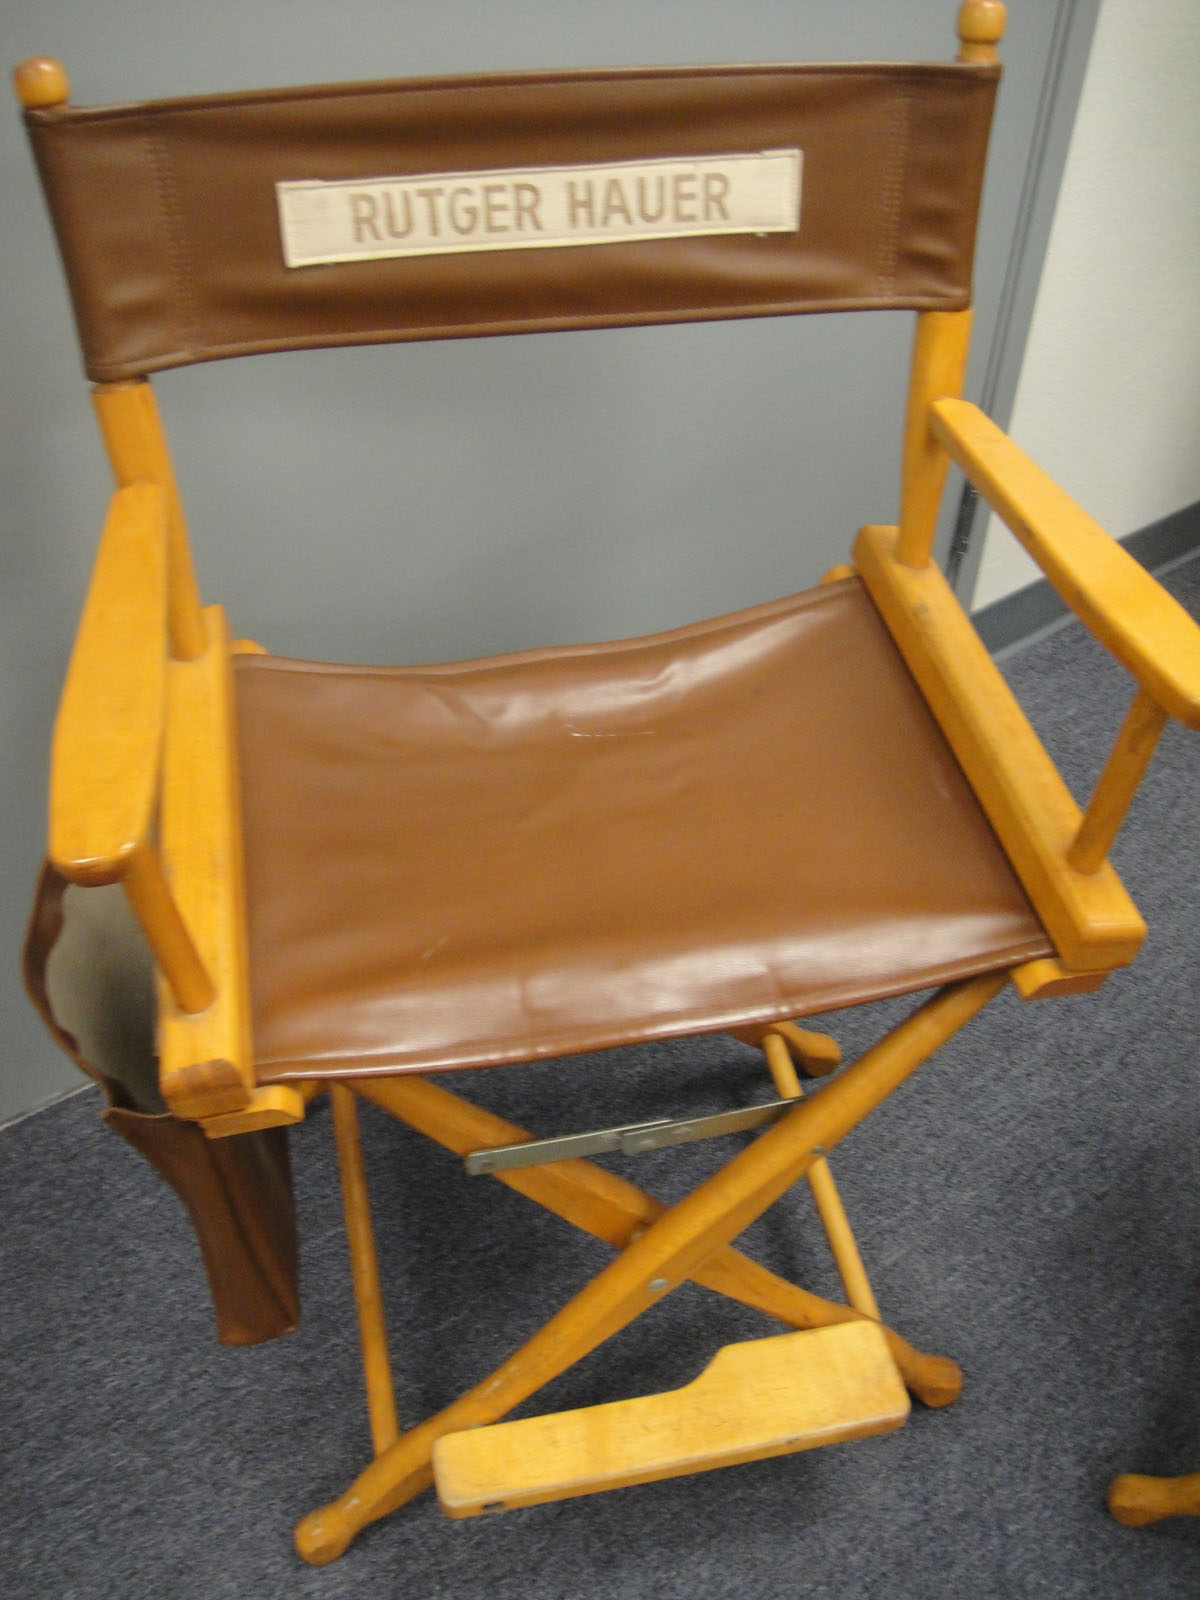 File:The Prop Store of London - LA - Rutger Hauers chair from Blade ...